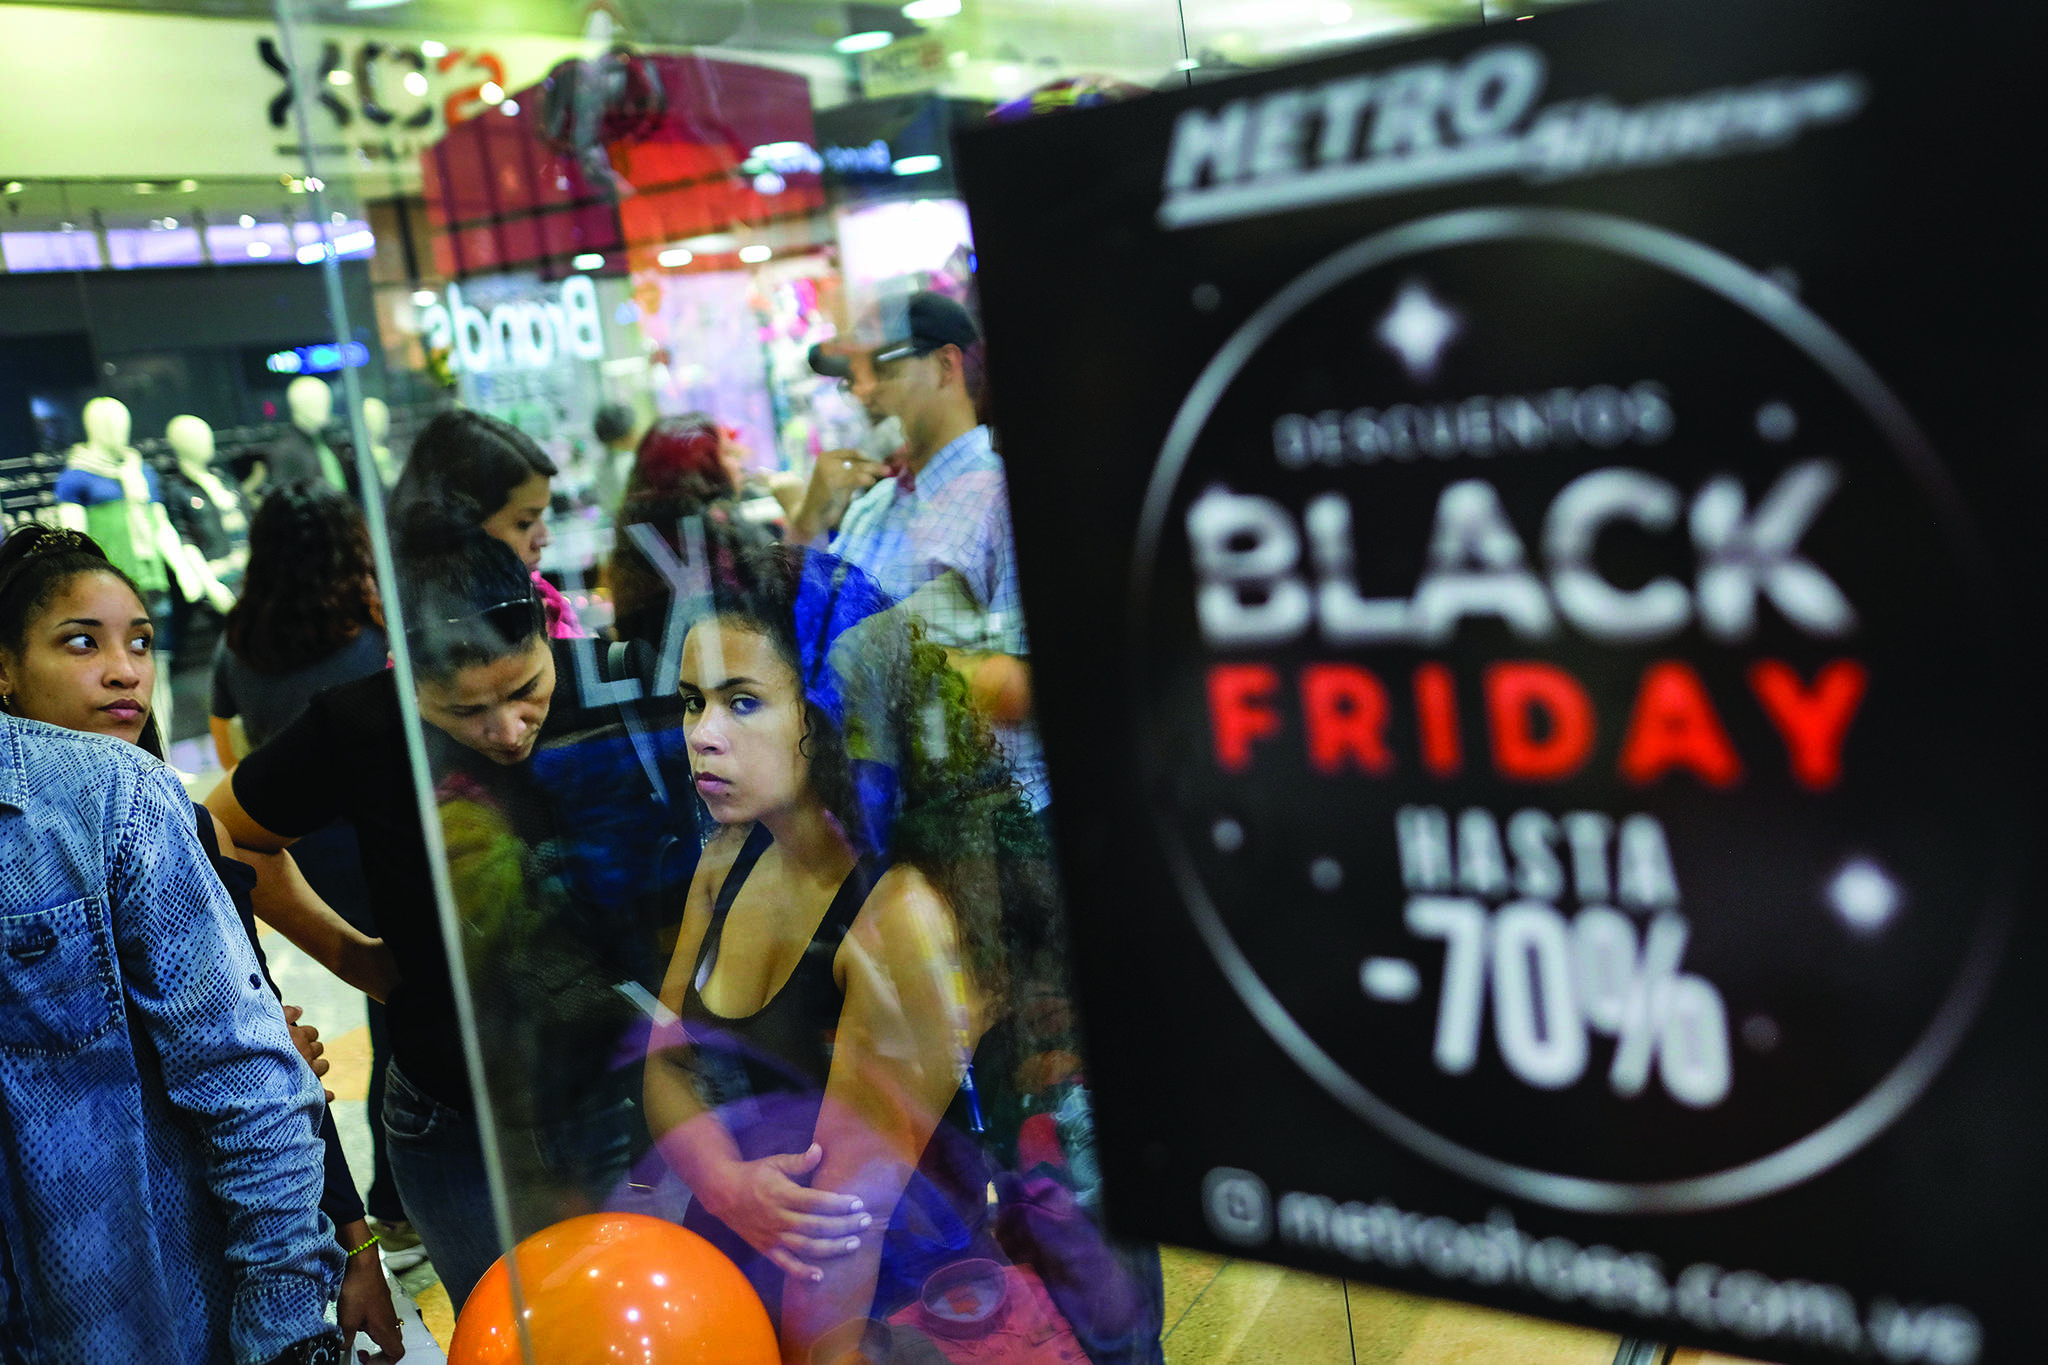 Shoppers stand near a sign promoting Black Friday sales at the Sambil shopping centre in Caracas, Venezuela, Friday, Nov. 29, 2019. This year, Black Friday is on Nov. 27, the same day as Buy Nothing Day. (AP Photo/Matias Delacroix)